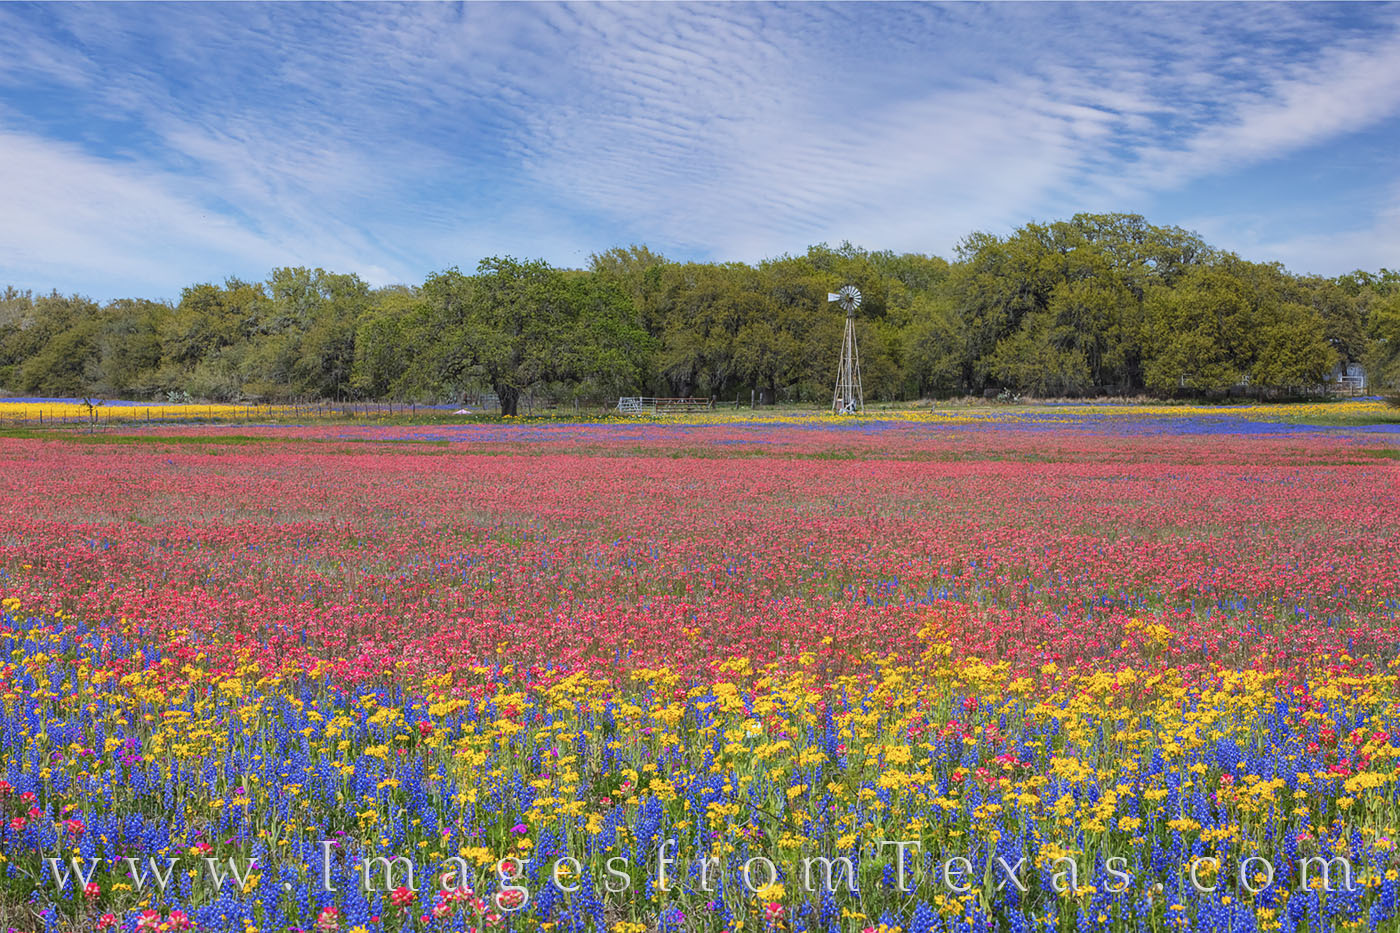 wildflowers, poteet, bluebonnets, paintbrush, groundsel, phlox, windmill, san antonio, south texas, color, spring, blue, red, yellow, purple, photo